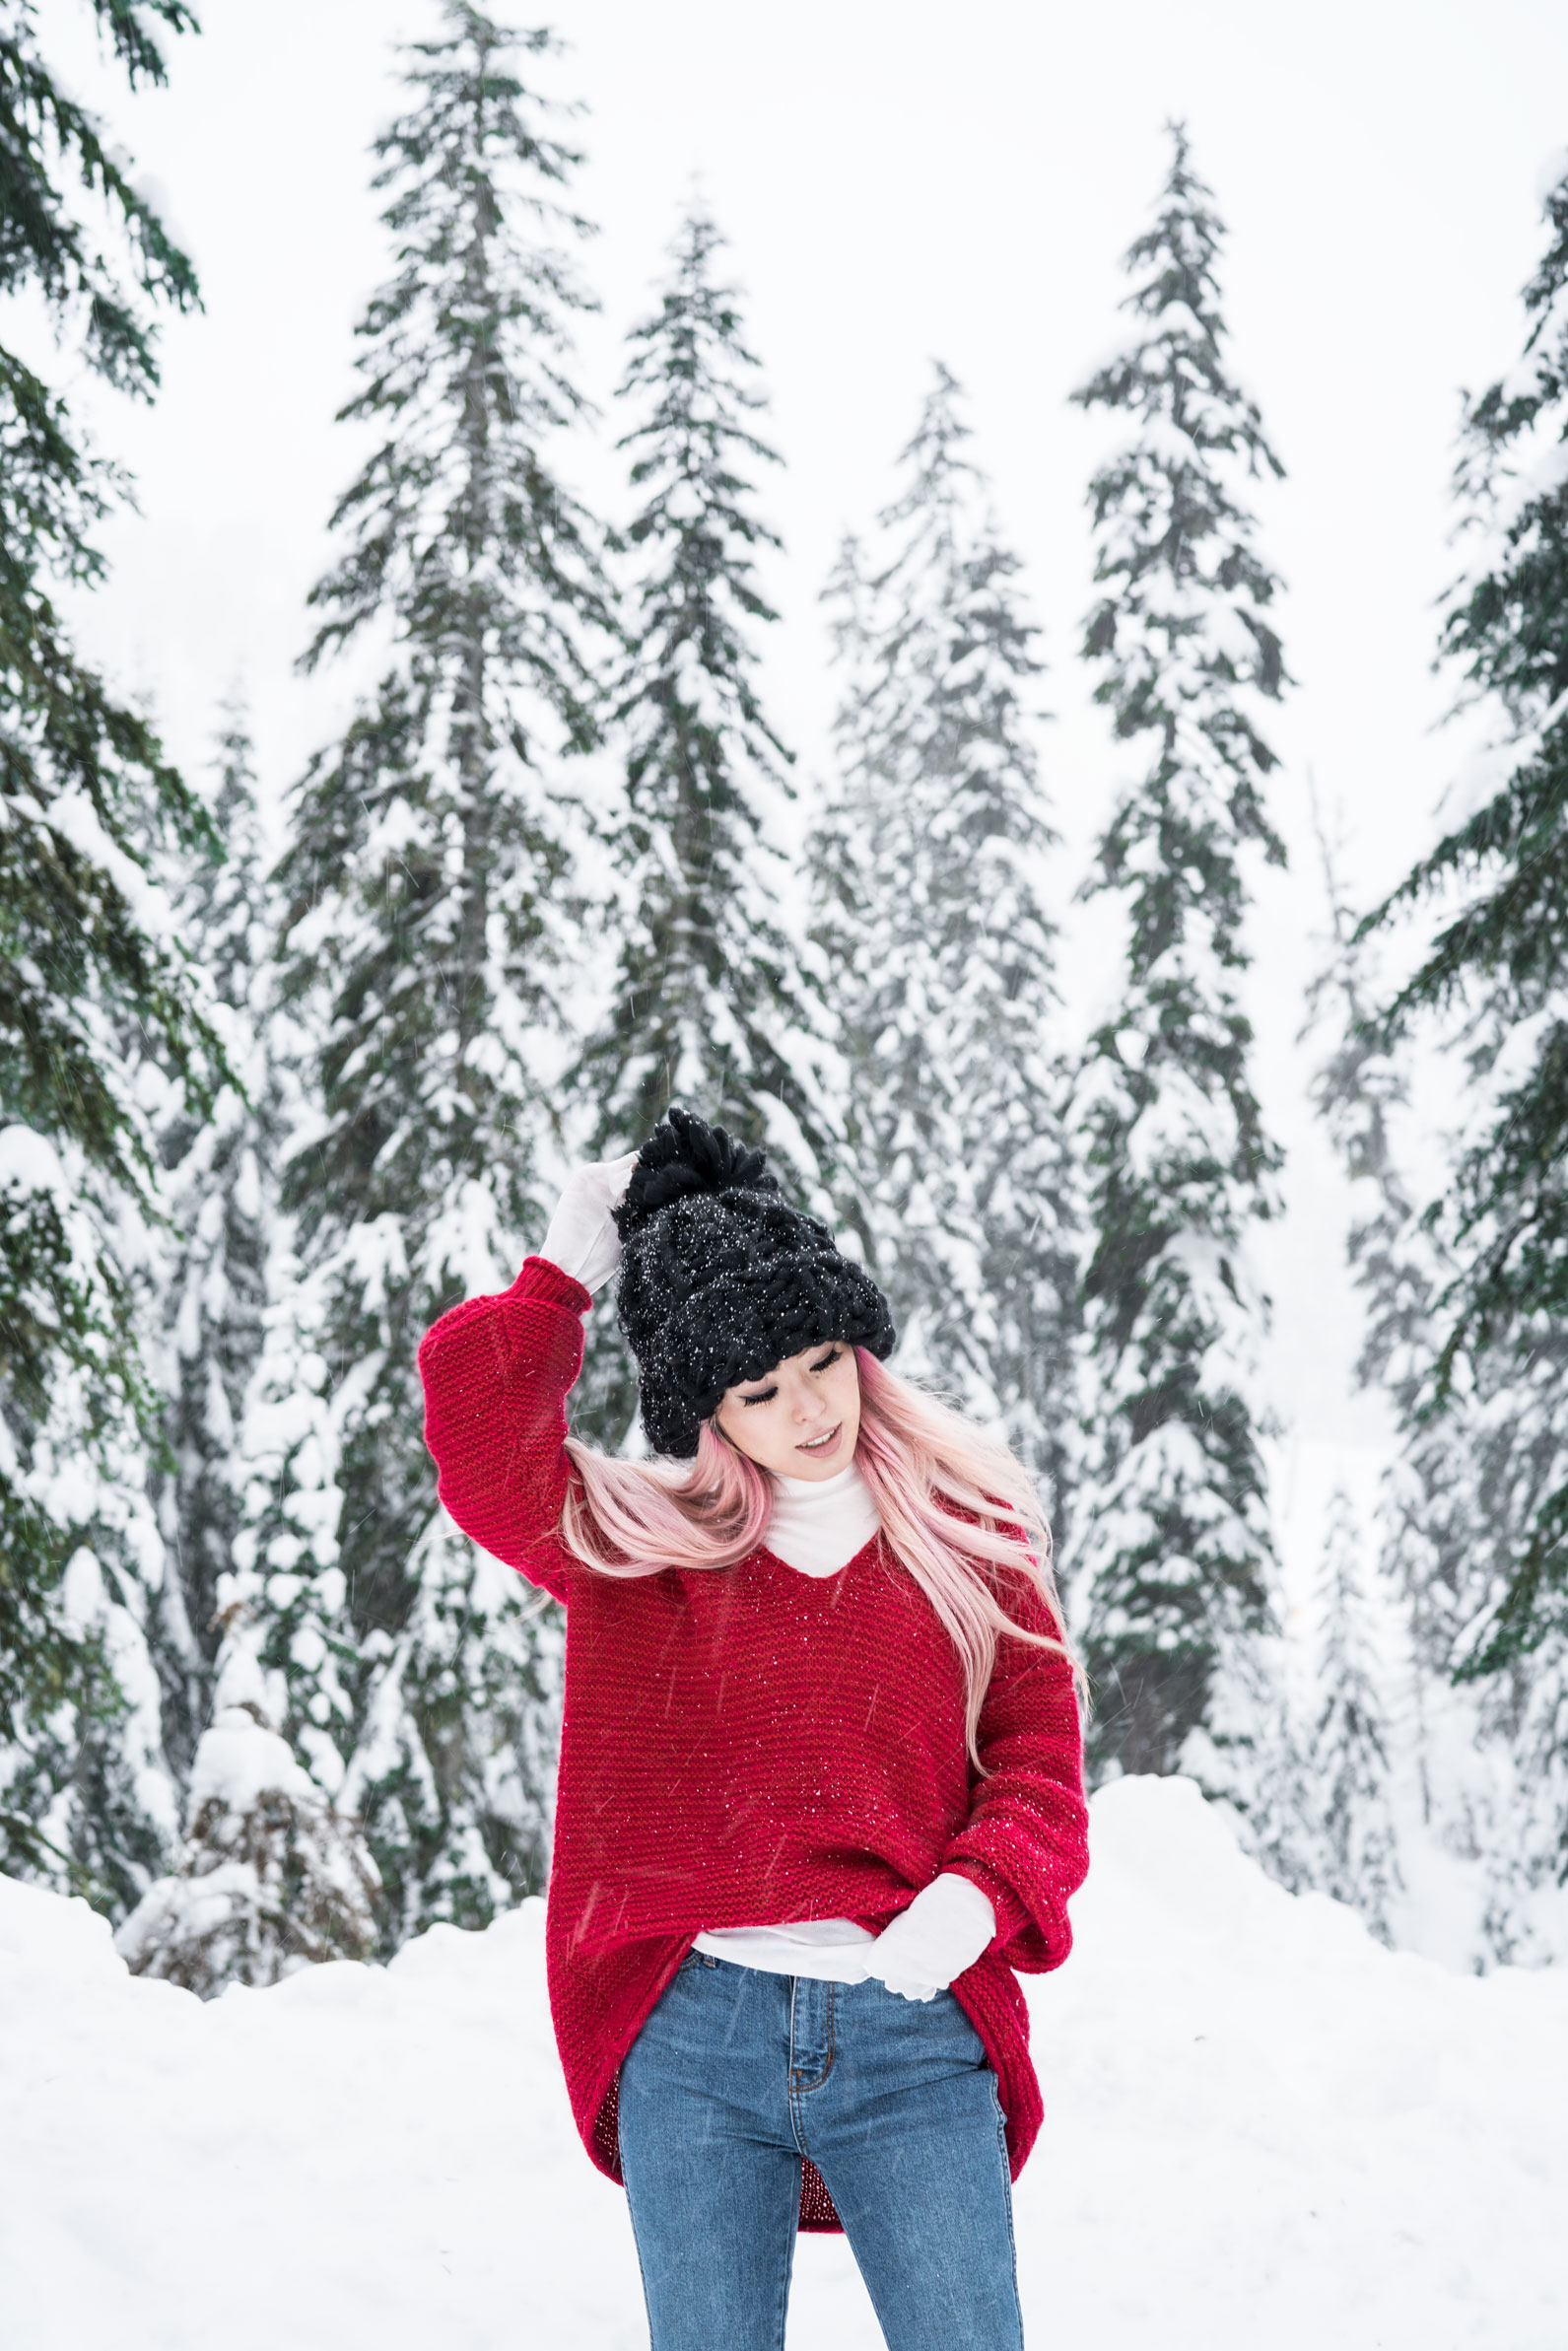 Free people All Mine Sweater, Free People Modern Cuff Layering Top, Free People Ace High Rise Jeans, Free People Bobbi Chunky Pom Beanie, EGO Ankle Boots, Aika's Love Closet, Seattle Fashion Blogger from Japan, Pink Hair,